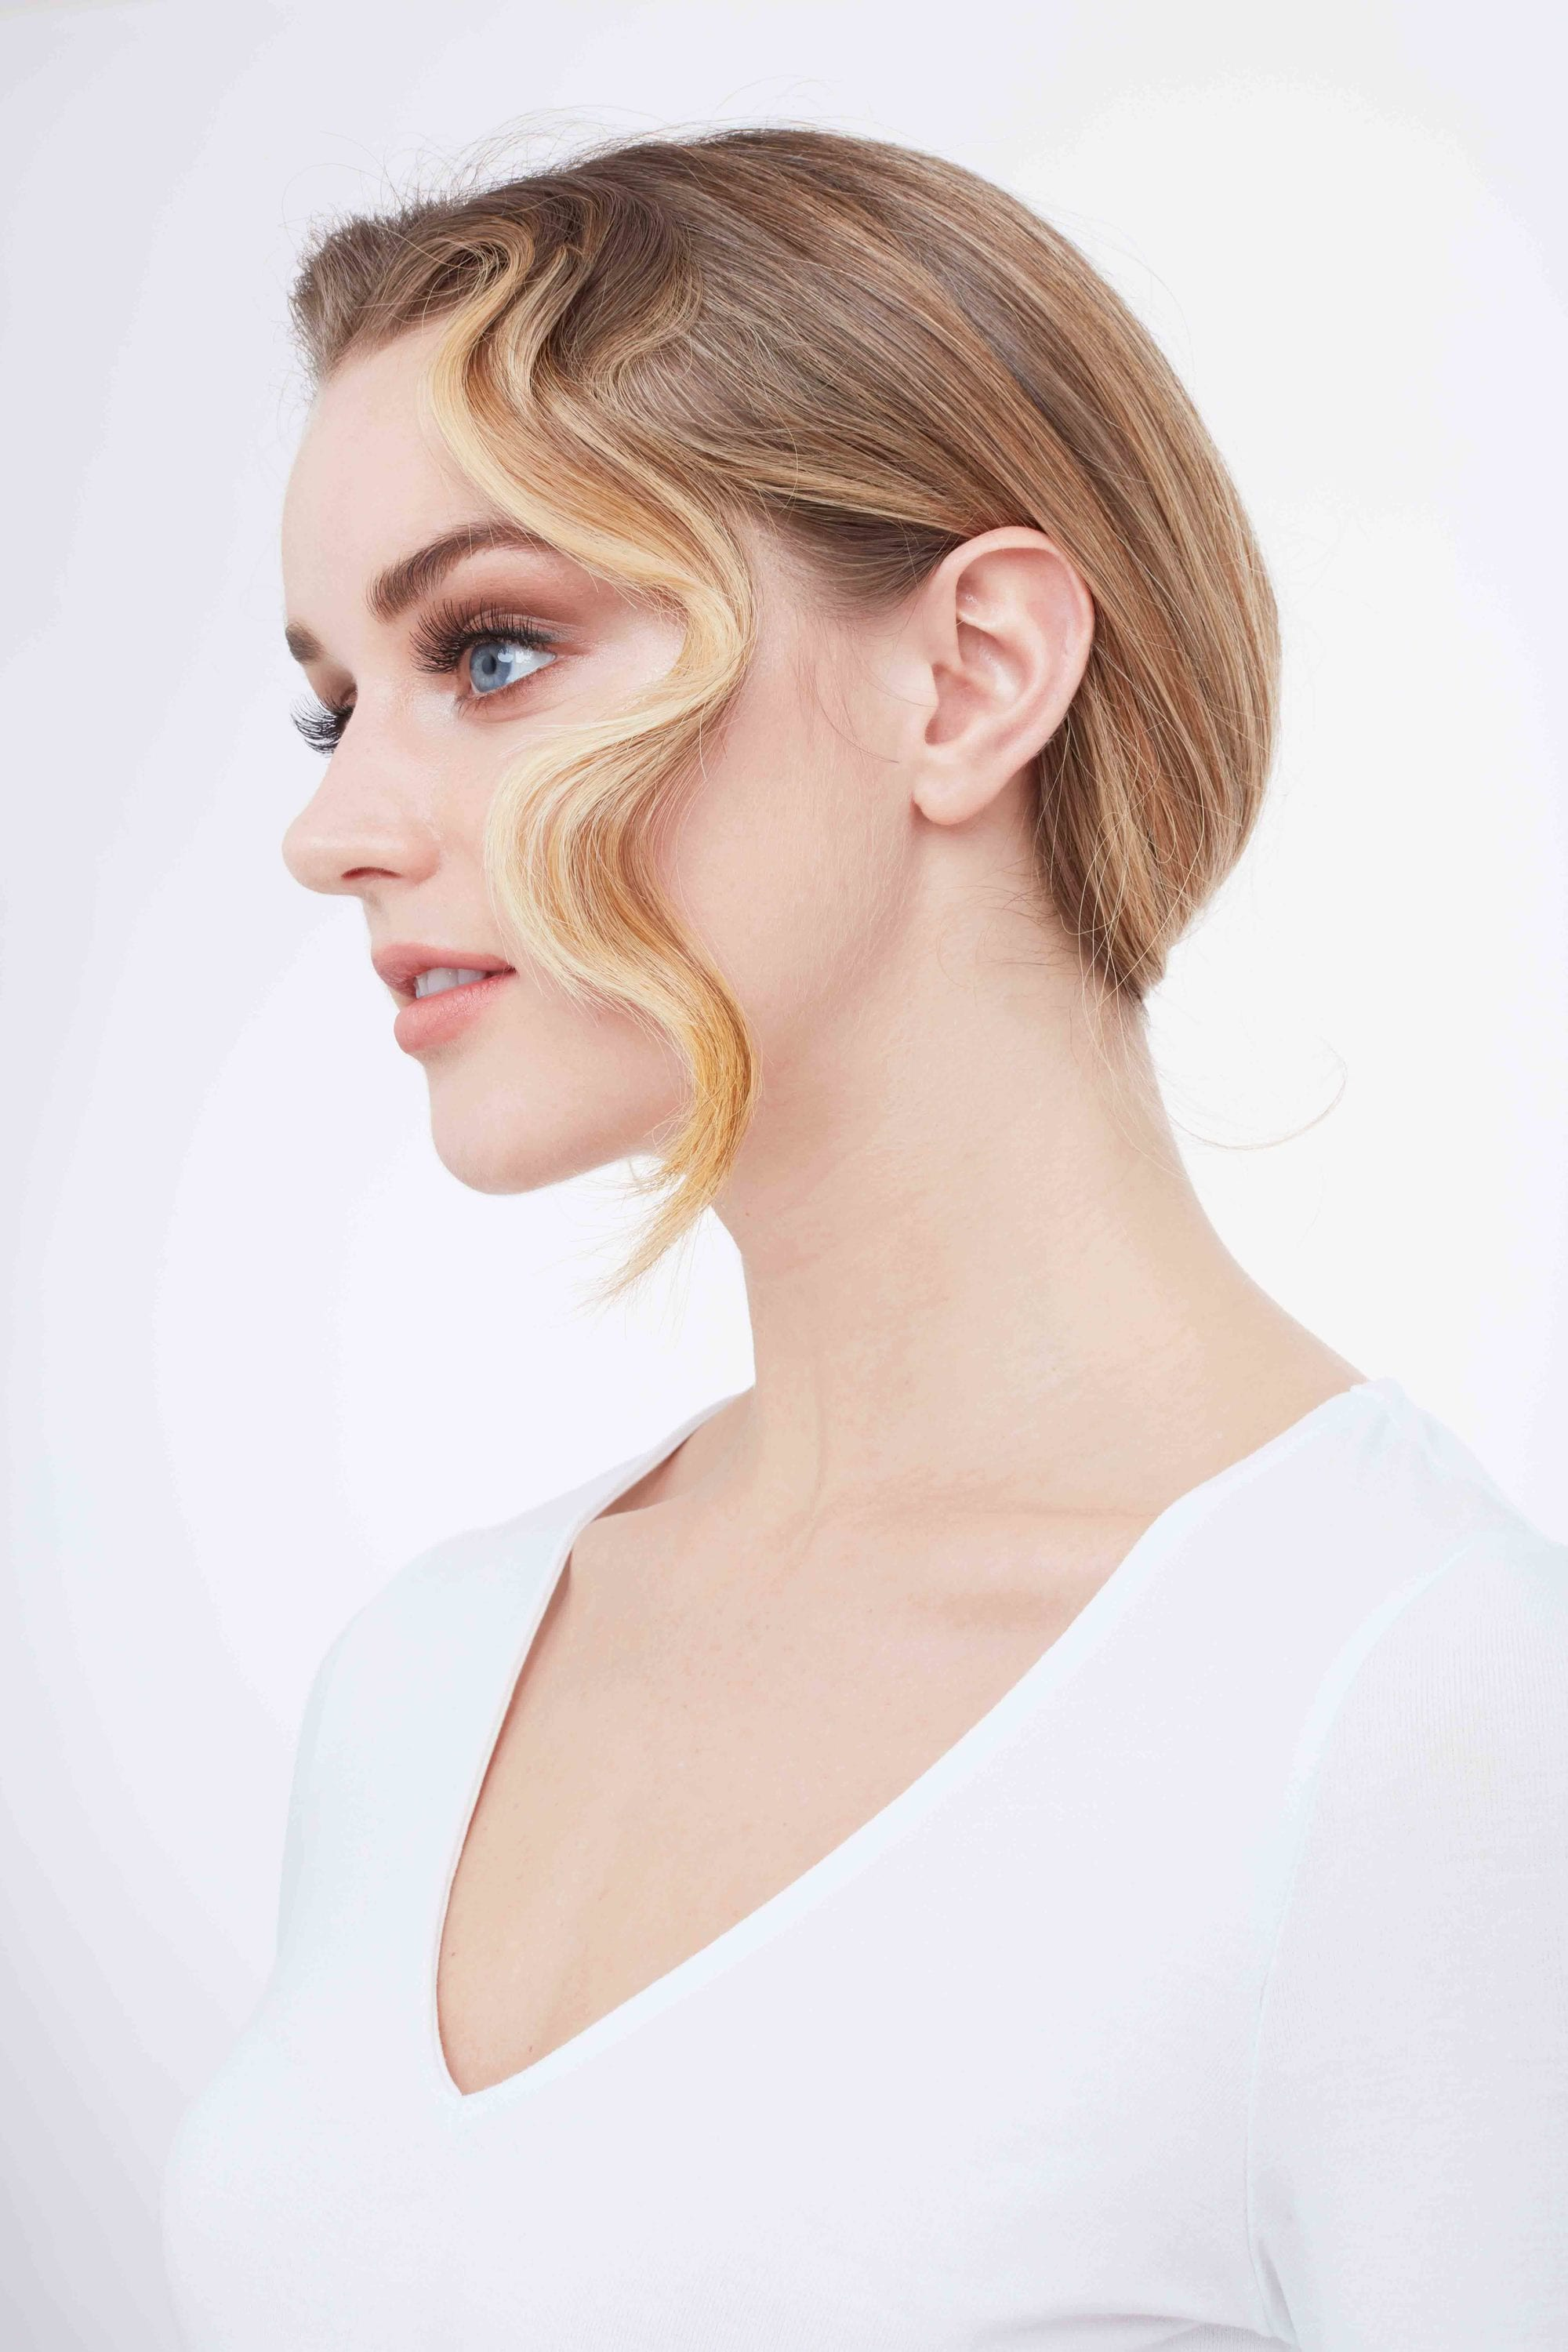 How to curl your hair: Blonde woman with her hair in an updo with a single 1920s style s-shaped wave, wearing a white v-neck t-shirt